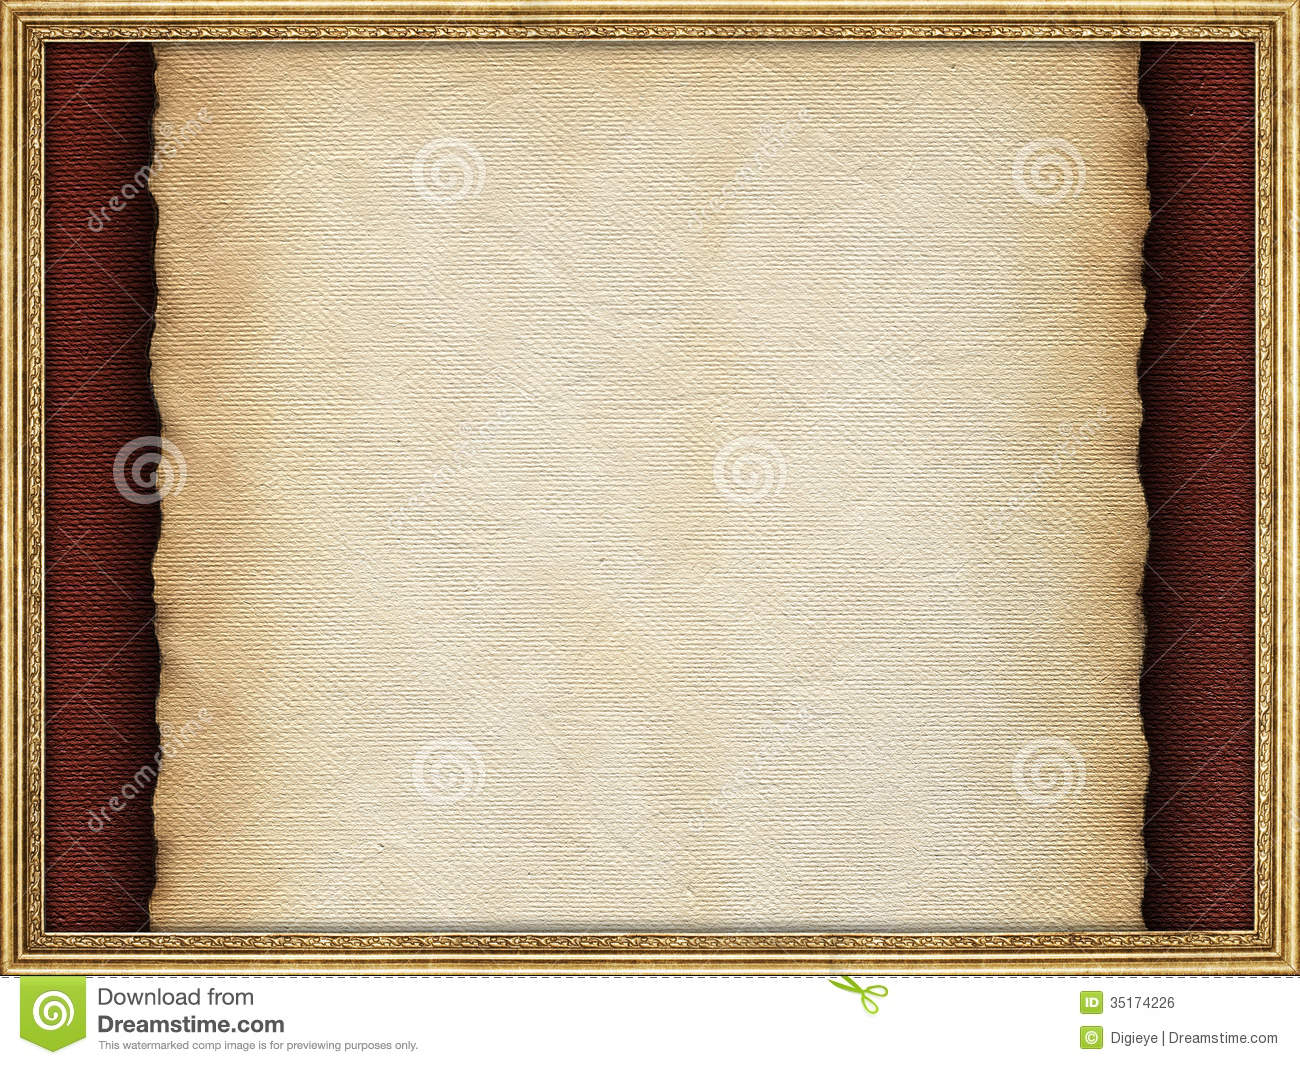 Handmade Paper Sheet And Picture Frame Stock Photo - Image of ...